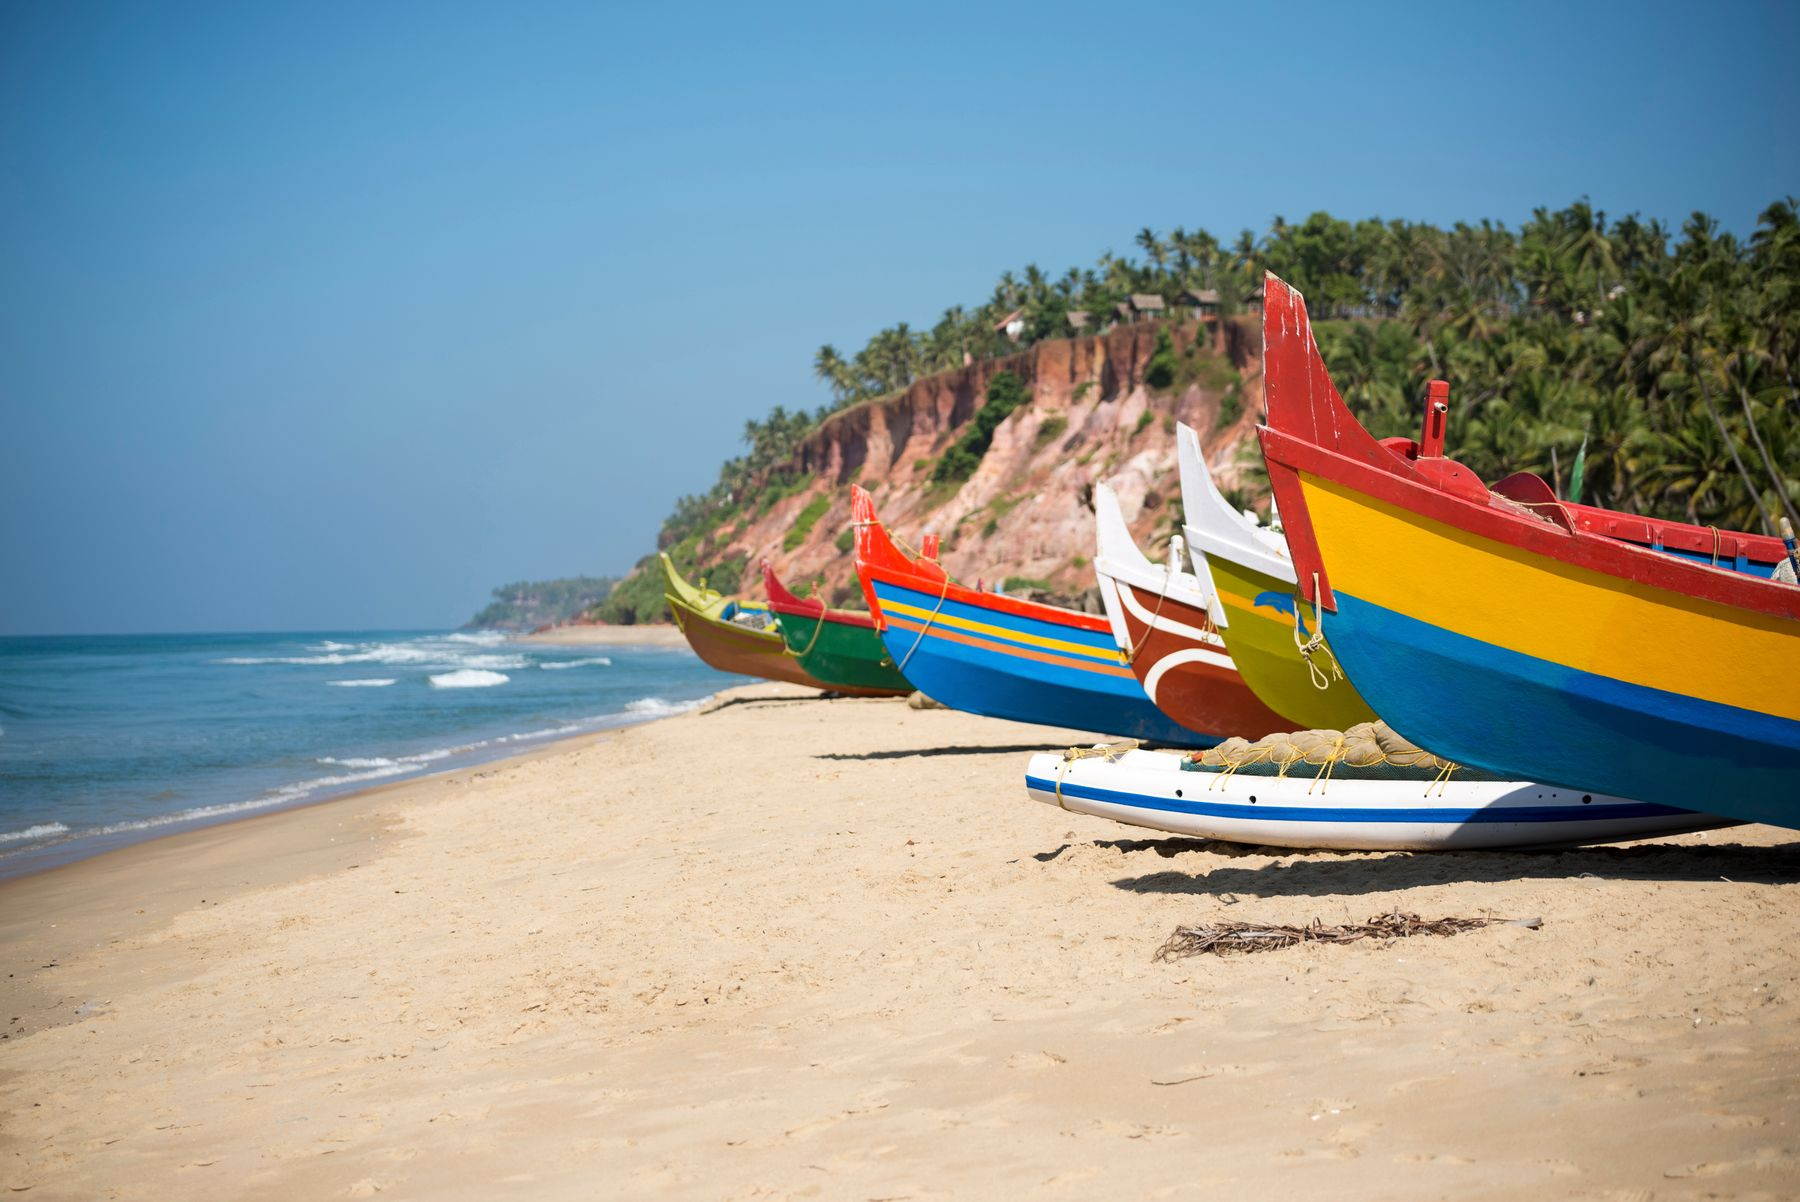 colourful wooden boats by the shore in kerala, india